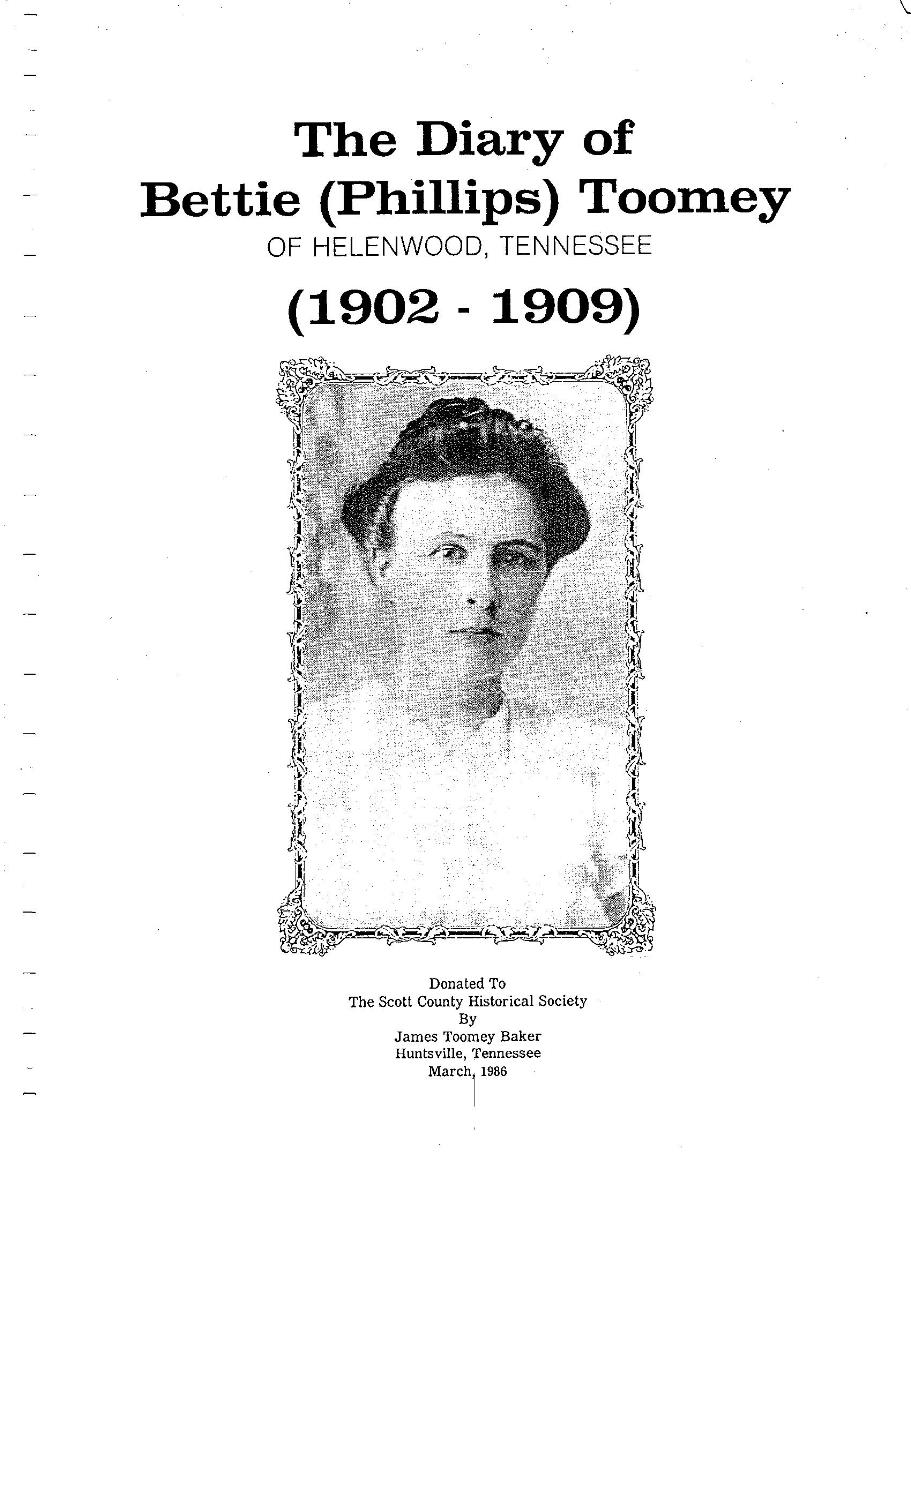 Tennessee scott county helenwood - The Diary Of Bettie Phillips Toomey